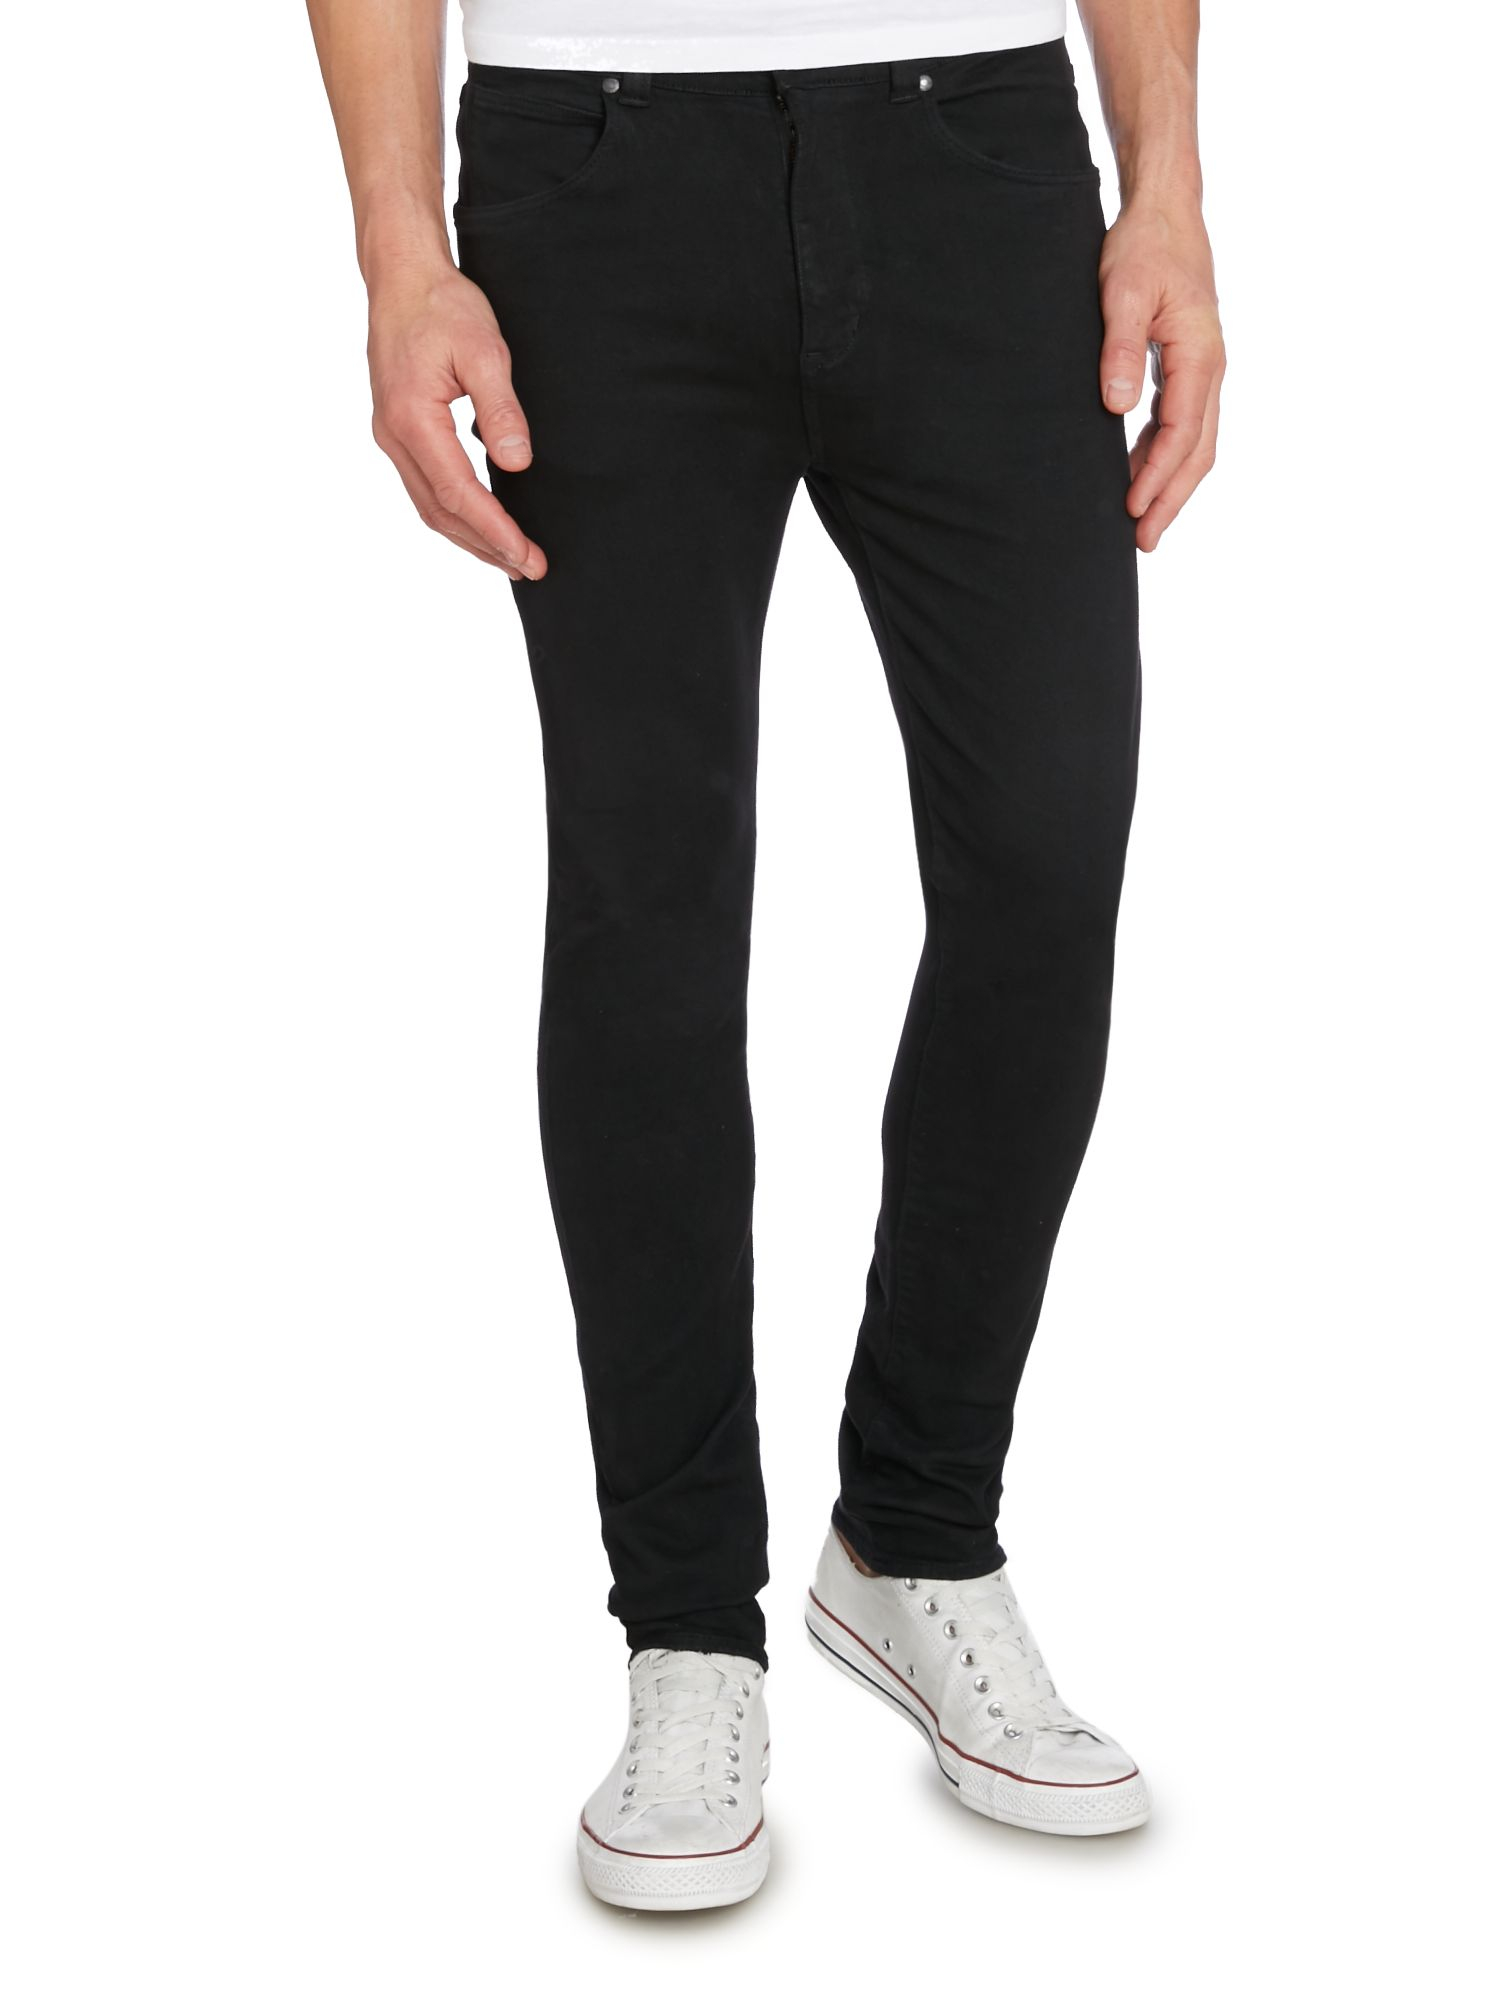 Men's Black Tapered Fit Jeans £25 £ 20 From Debenhams Price last checked 9 hours ago Product prices and availability are accurate as of the date/time indicated and are subject to change.